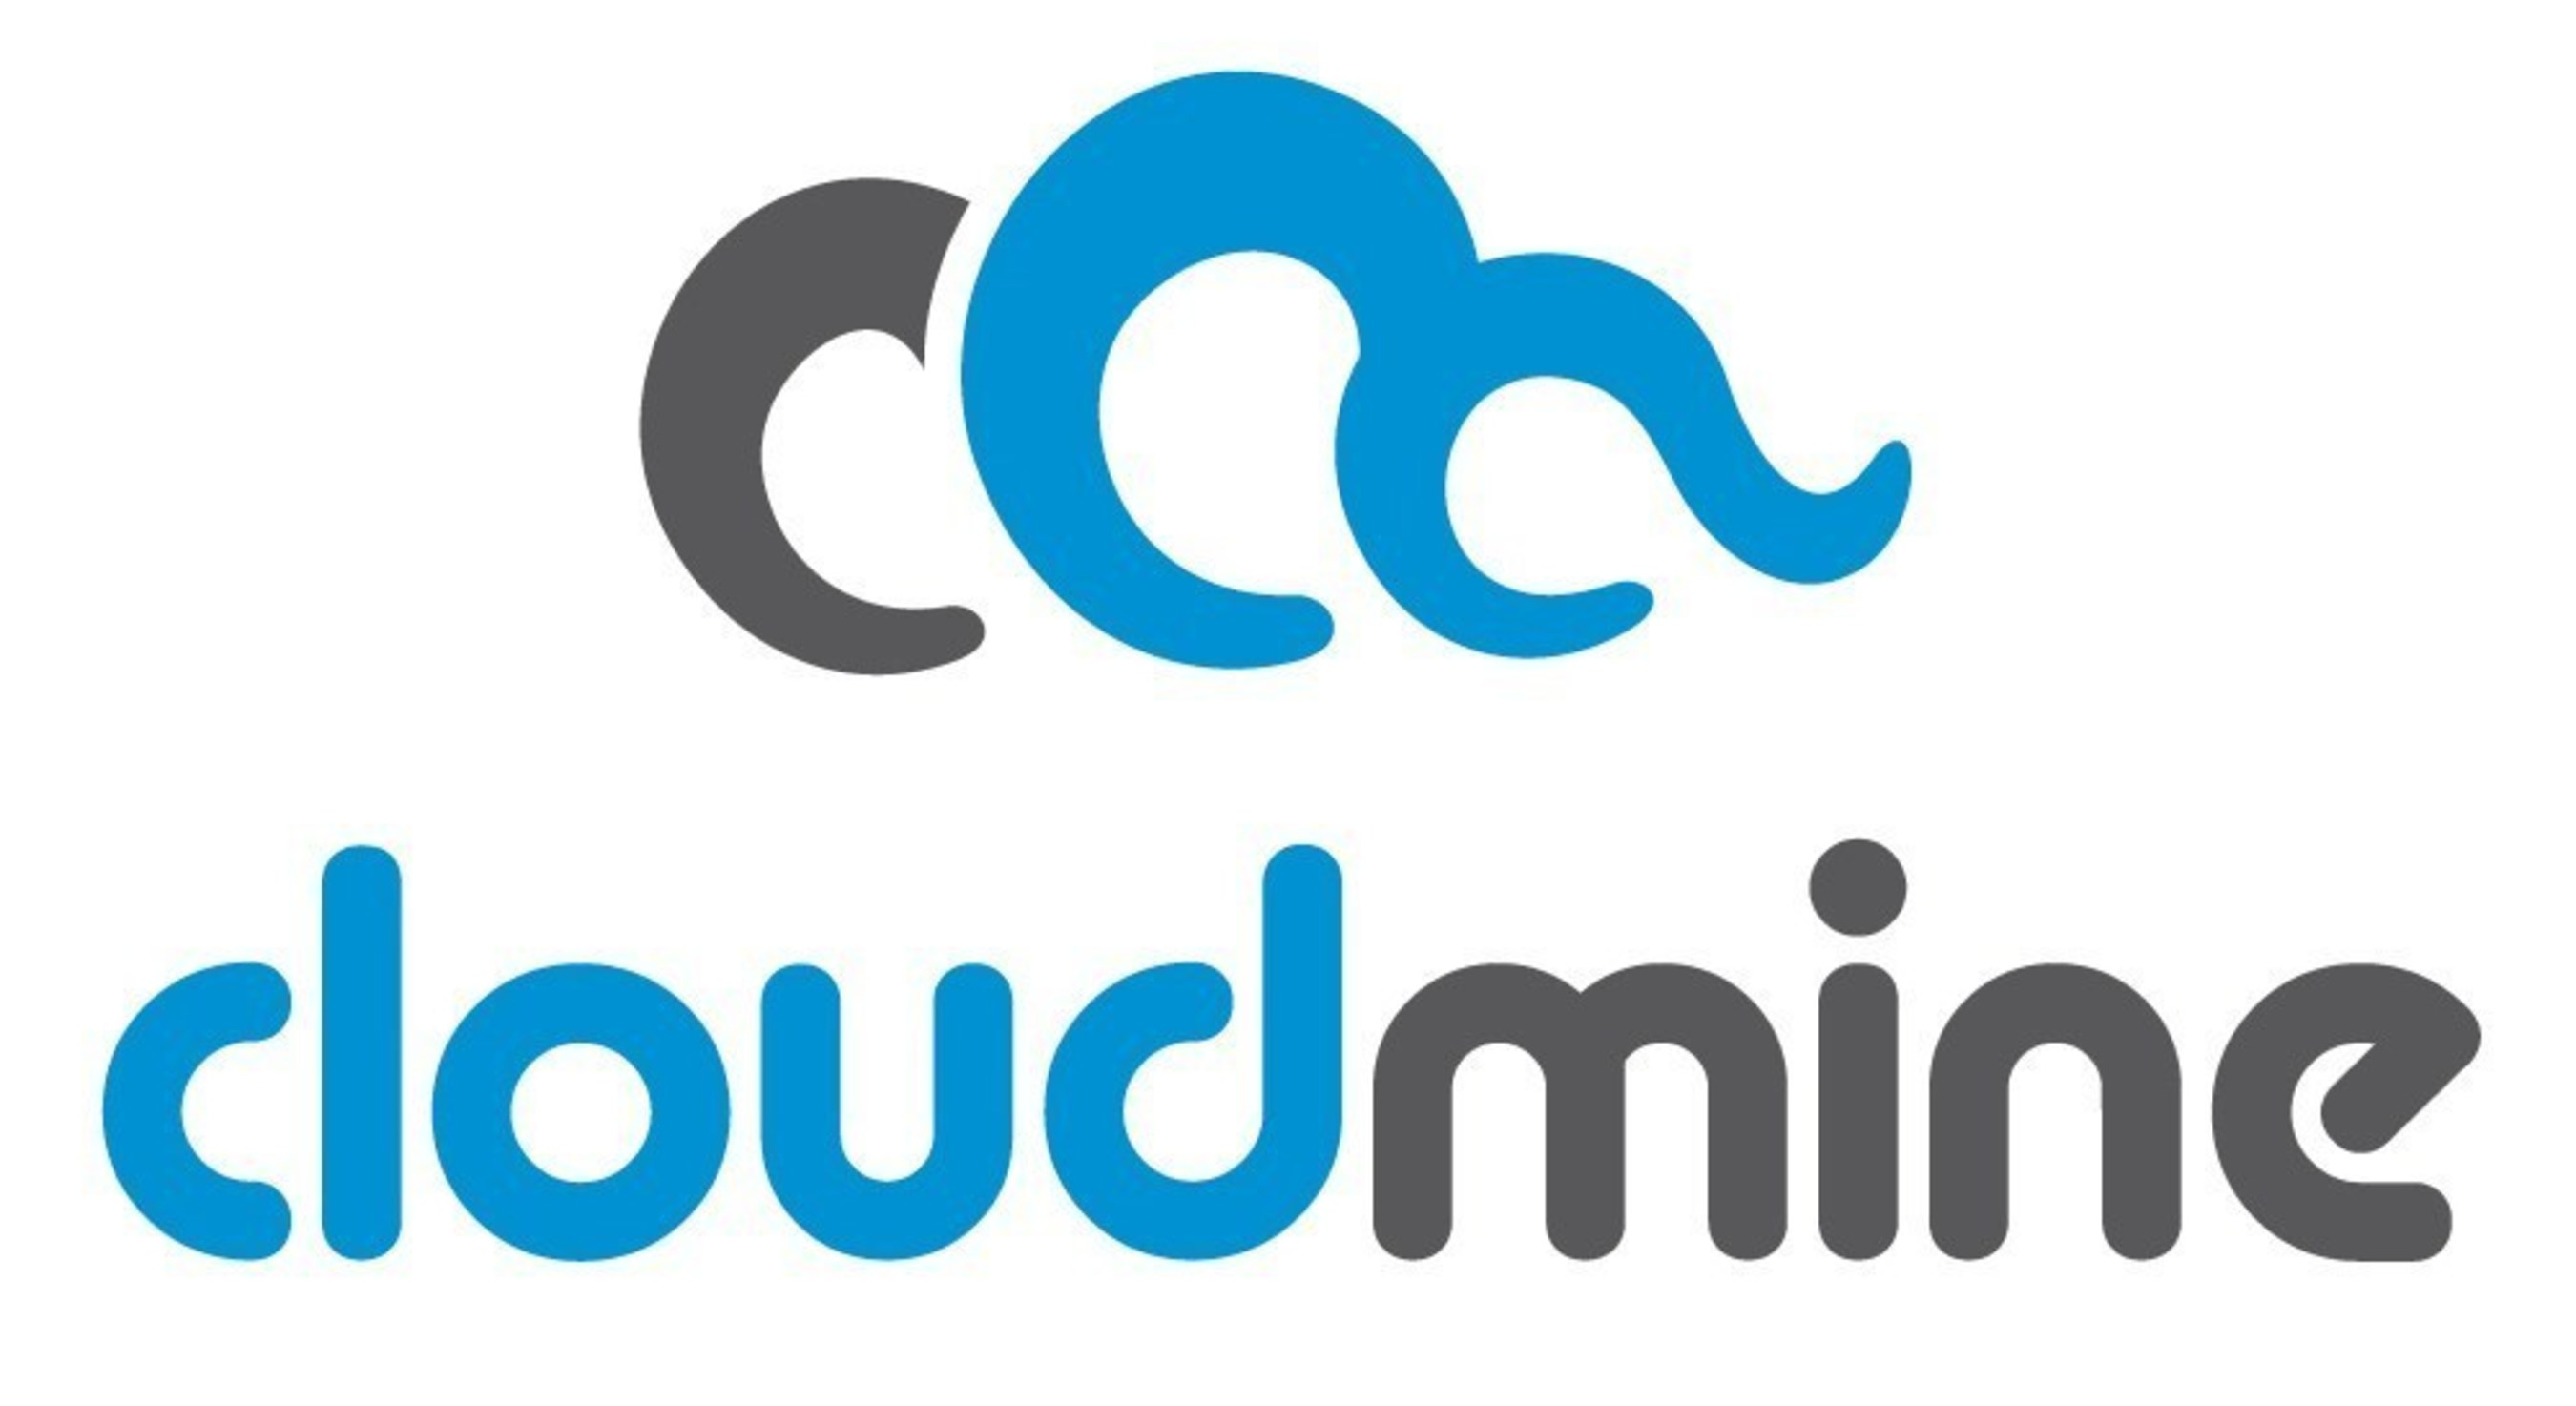 CloudMine is the leading mobile platform provider for healthcare, pharmacy, and life science organizations.